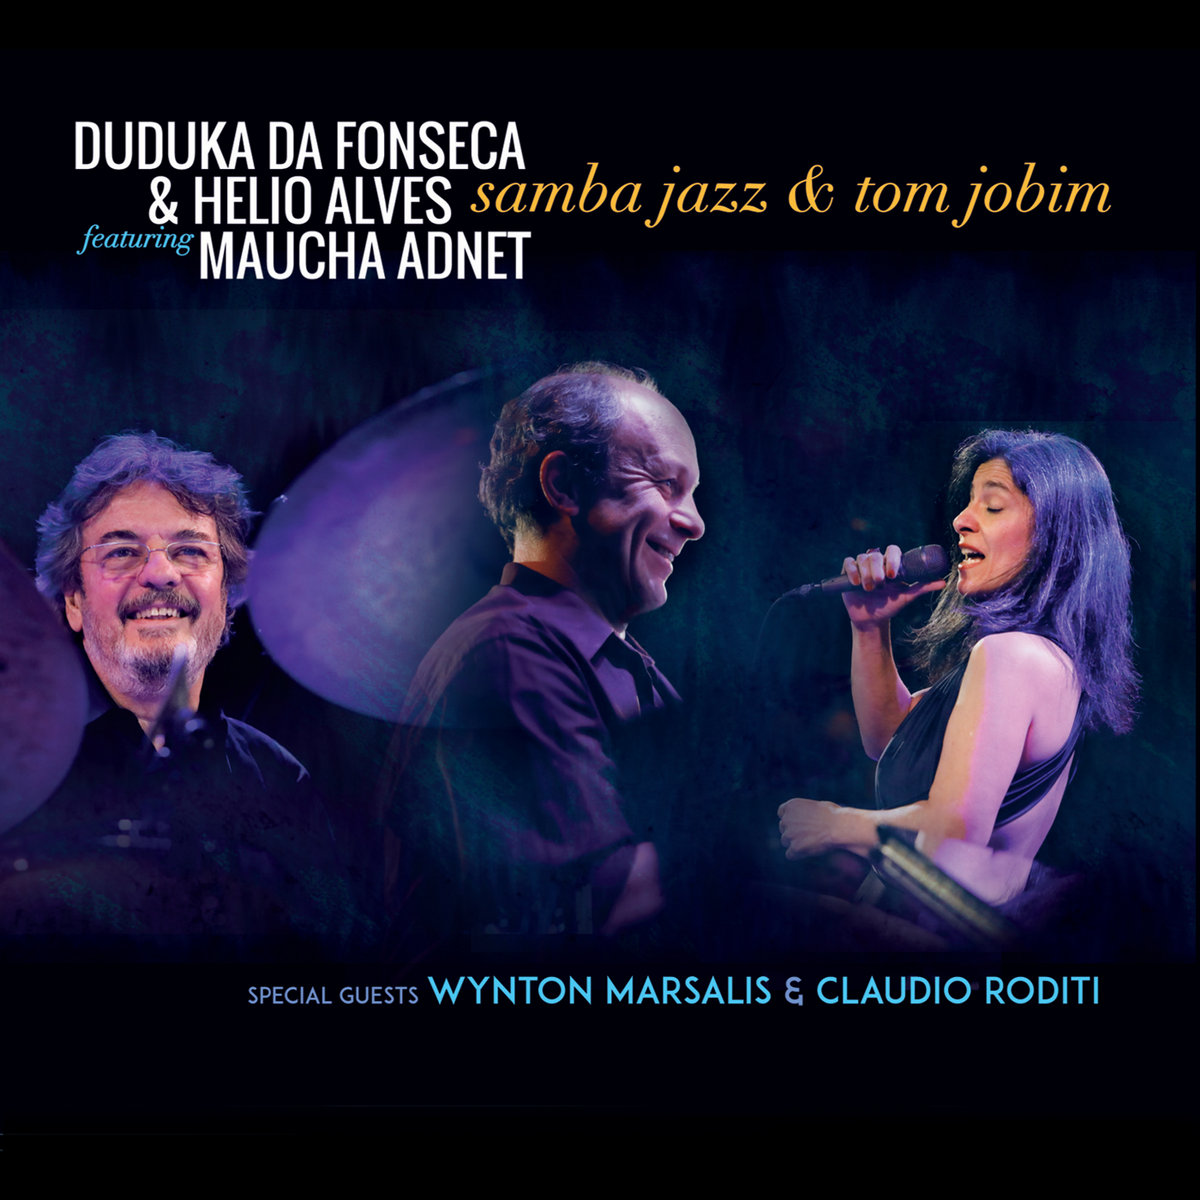 Image result for Duduka Da Fonseca & Helio Alves - Samba Jazz & Tom Jobim""